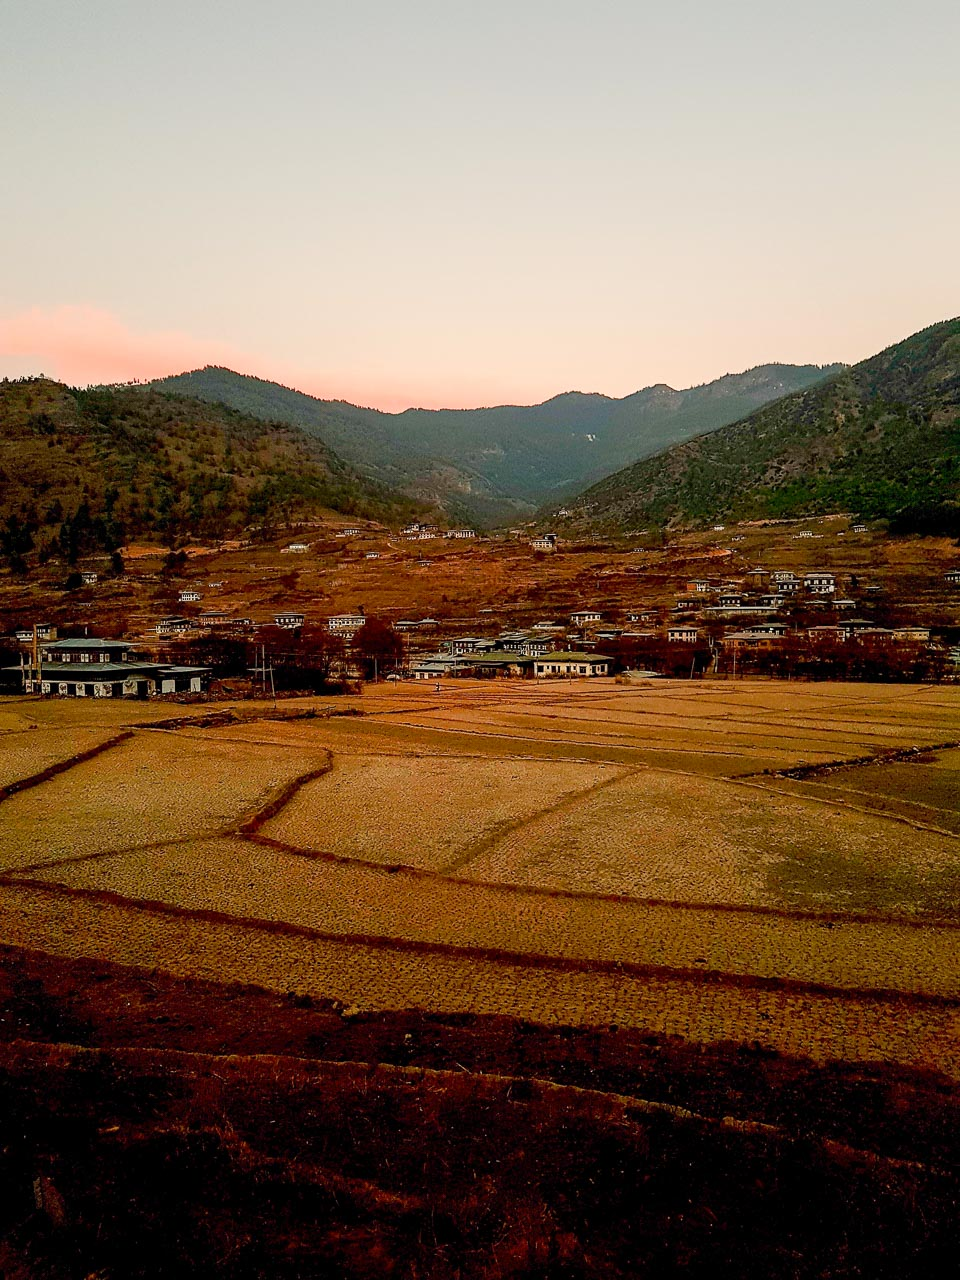 Returning to Paro at sunset